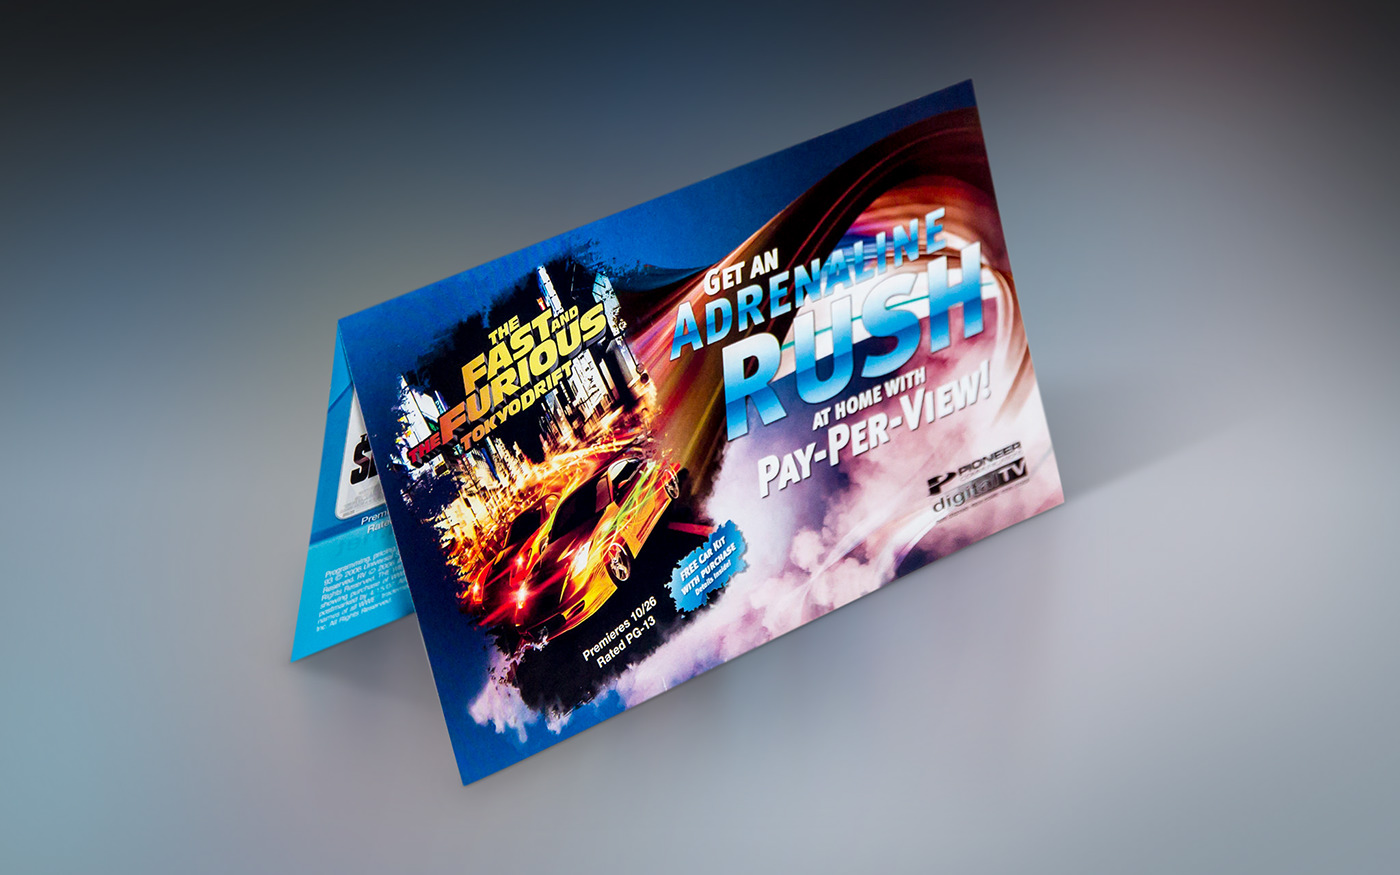 Movies on demand monthly bill insert mso matrix Transformers Direct mail harry potter fast and furious